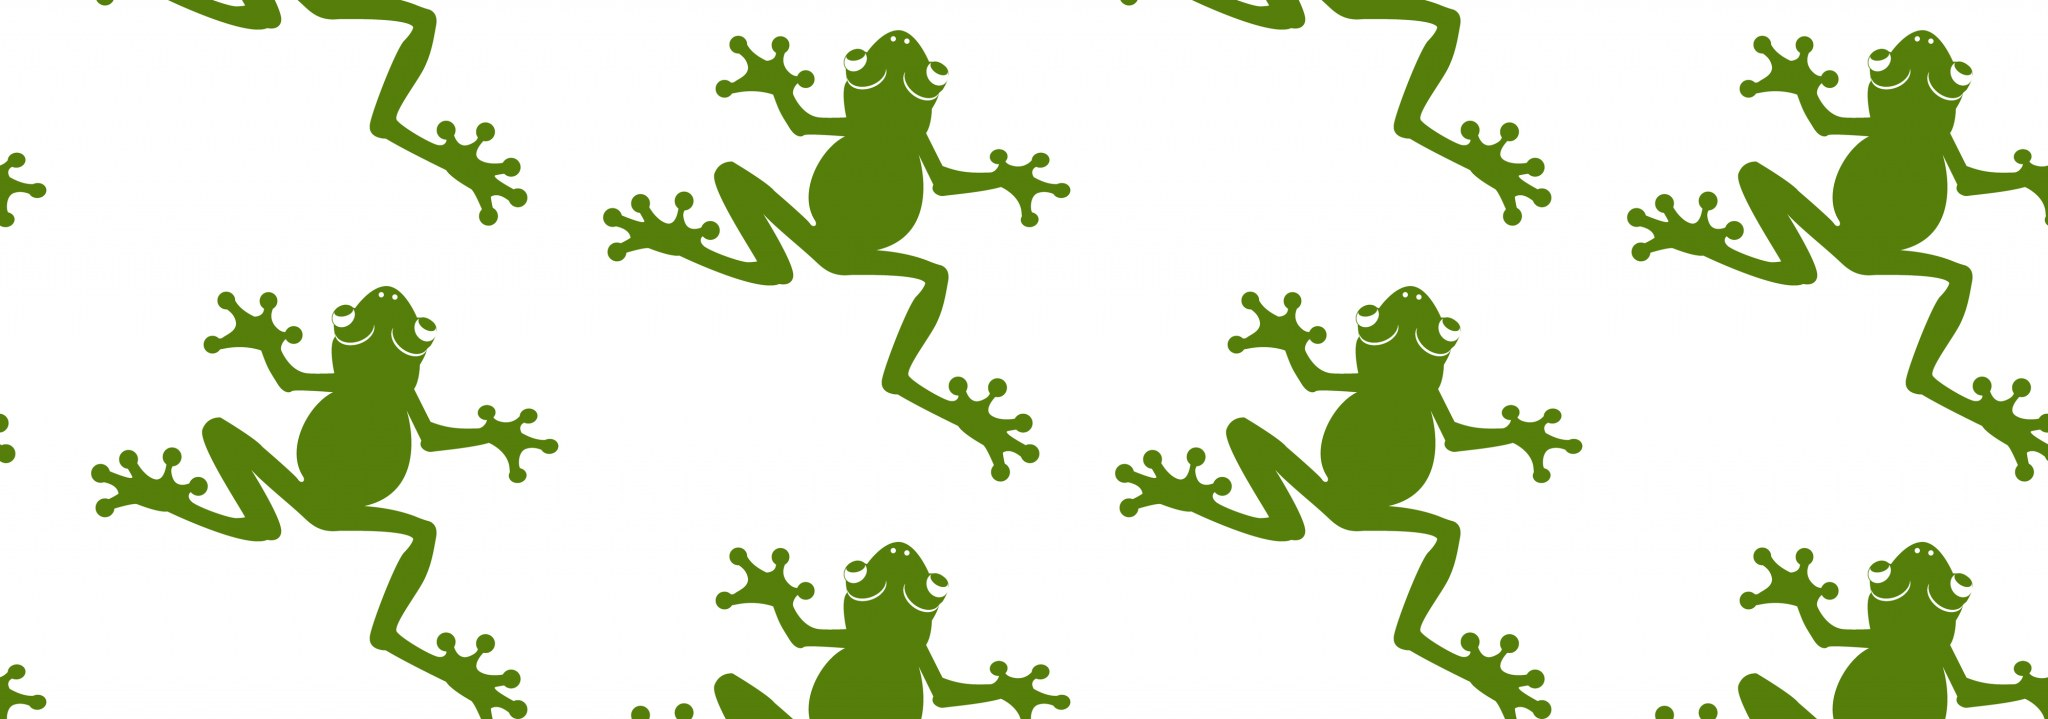 frog vector silhouette